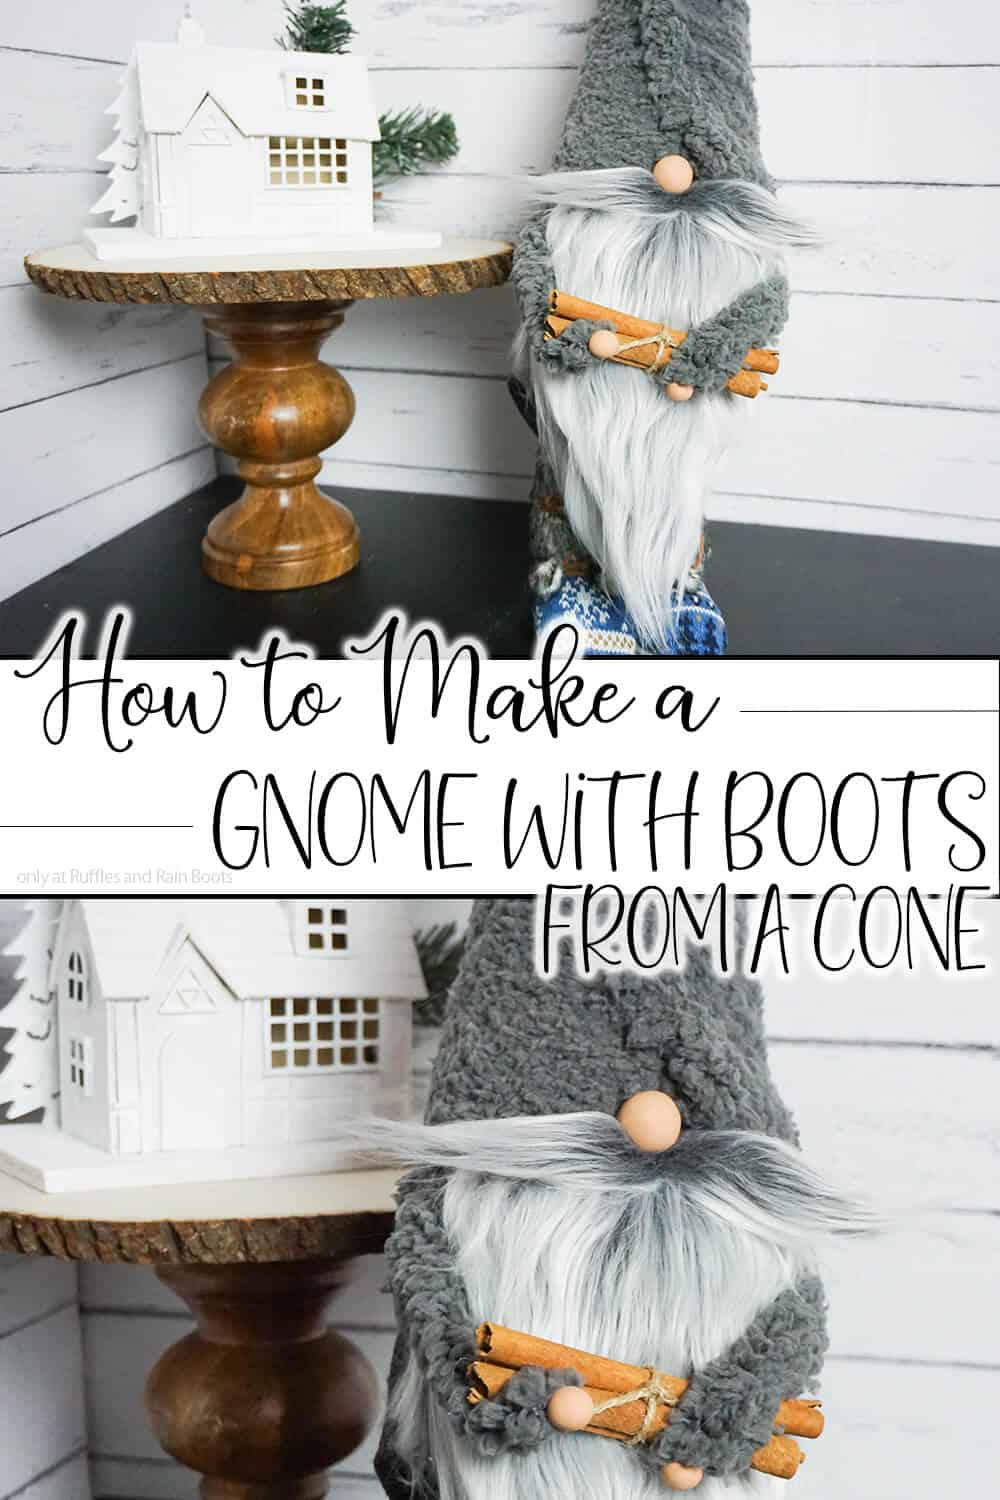 photo collage of heirloom quality gnome project with text which reads how to make a gnome with boots from a cone